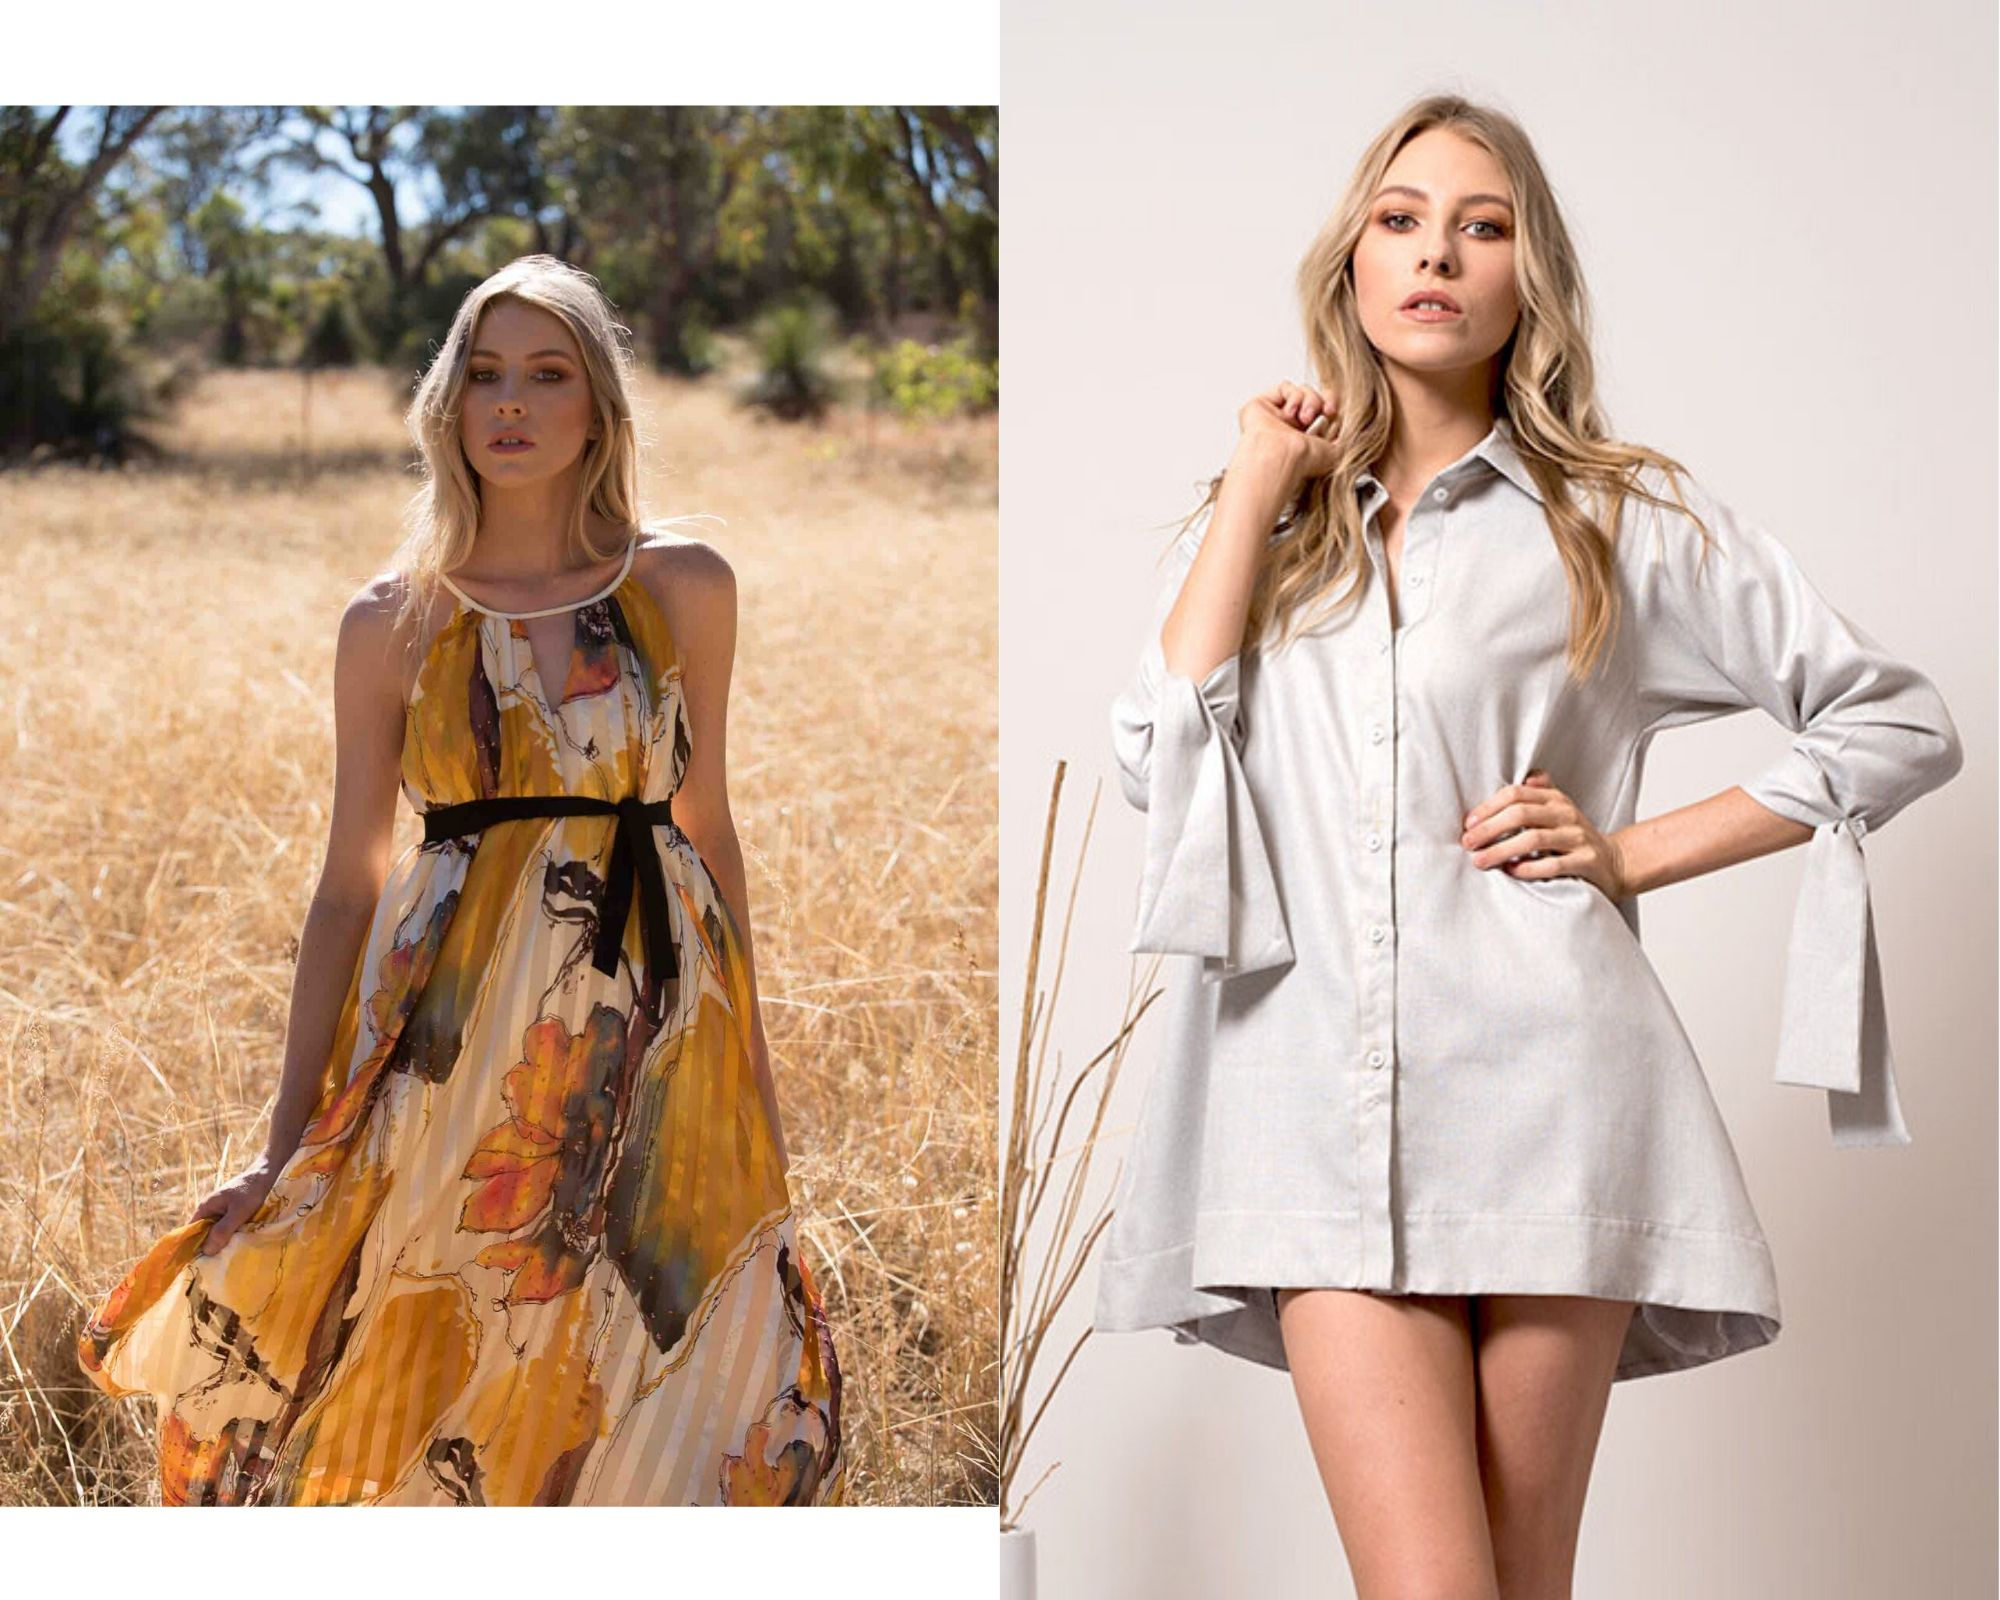 Girl in a yellow floral dress in a wheat field, together with a girl in a shirt style dress by D-Tribe Designs